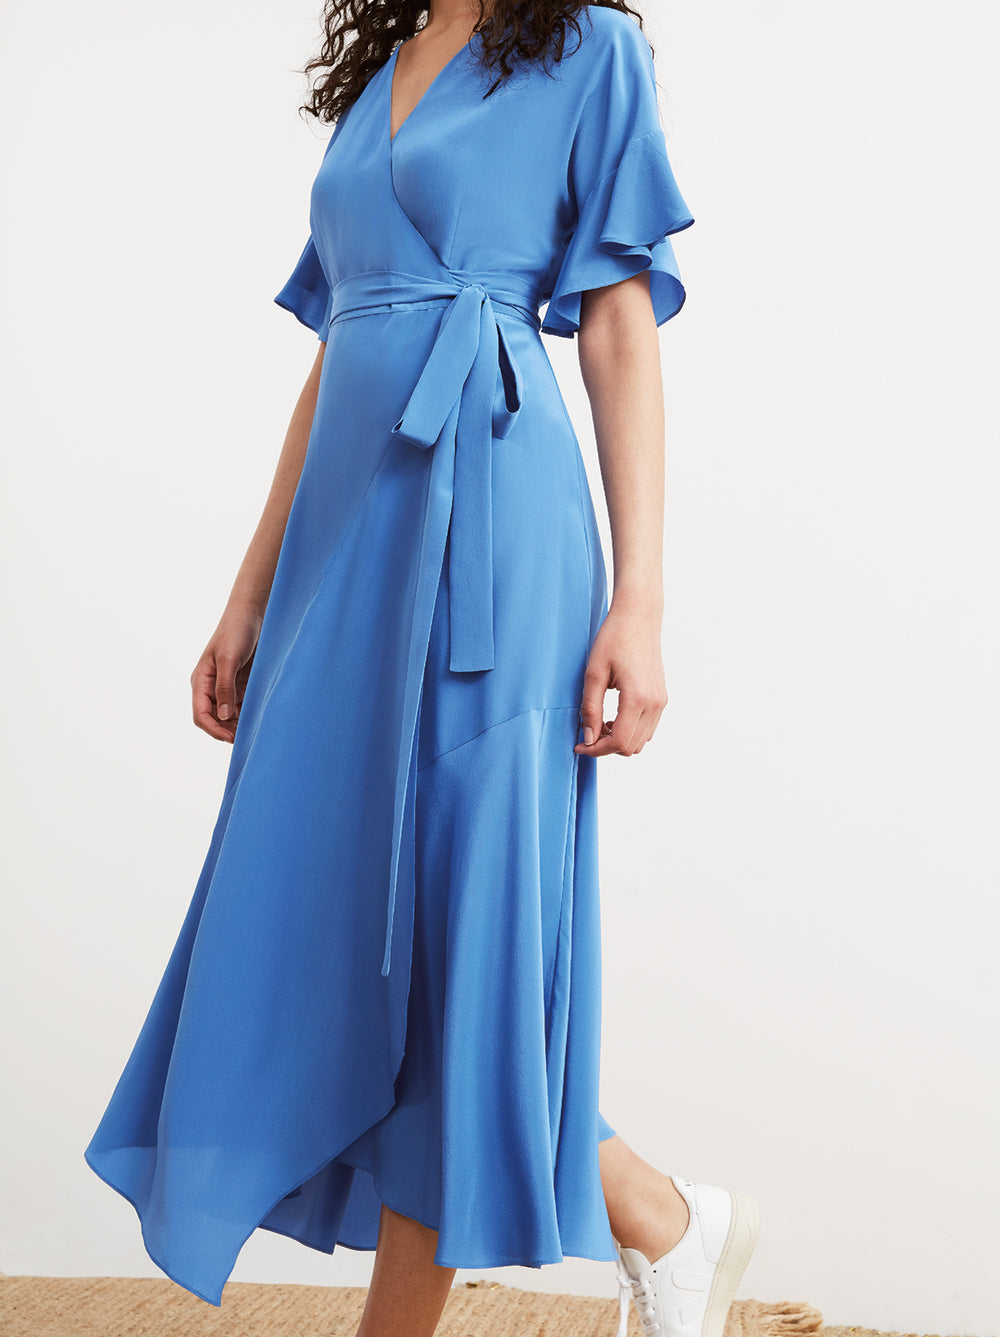 Eliana Blue Silk Wrap Dress by KITRI Studio